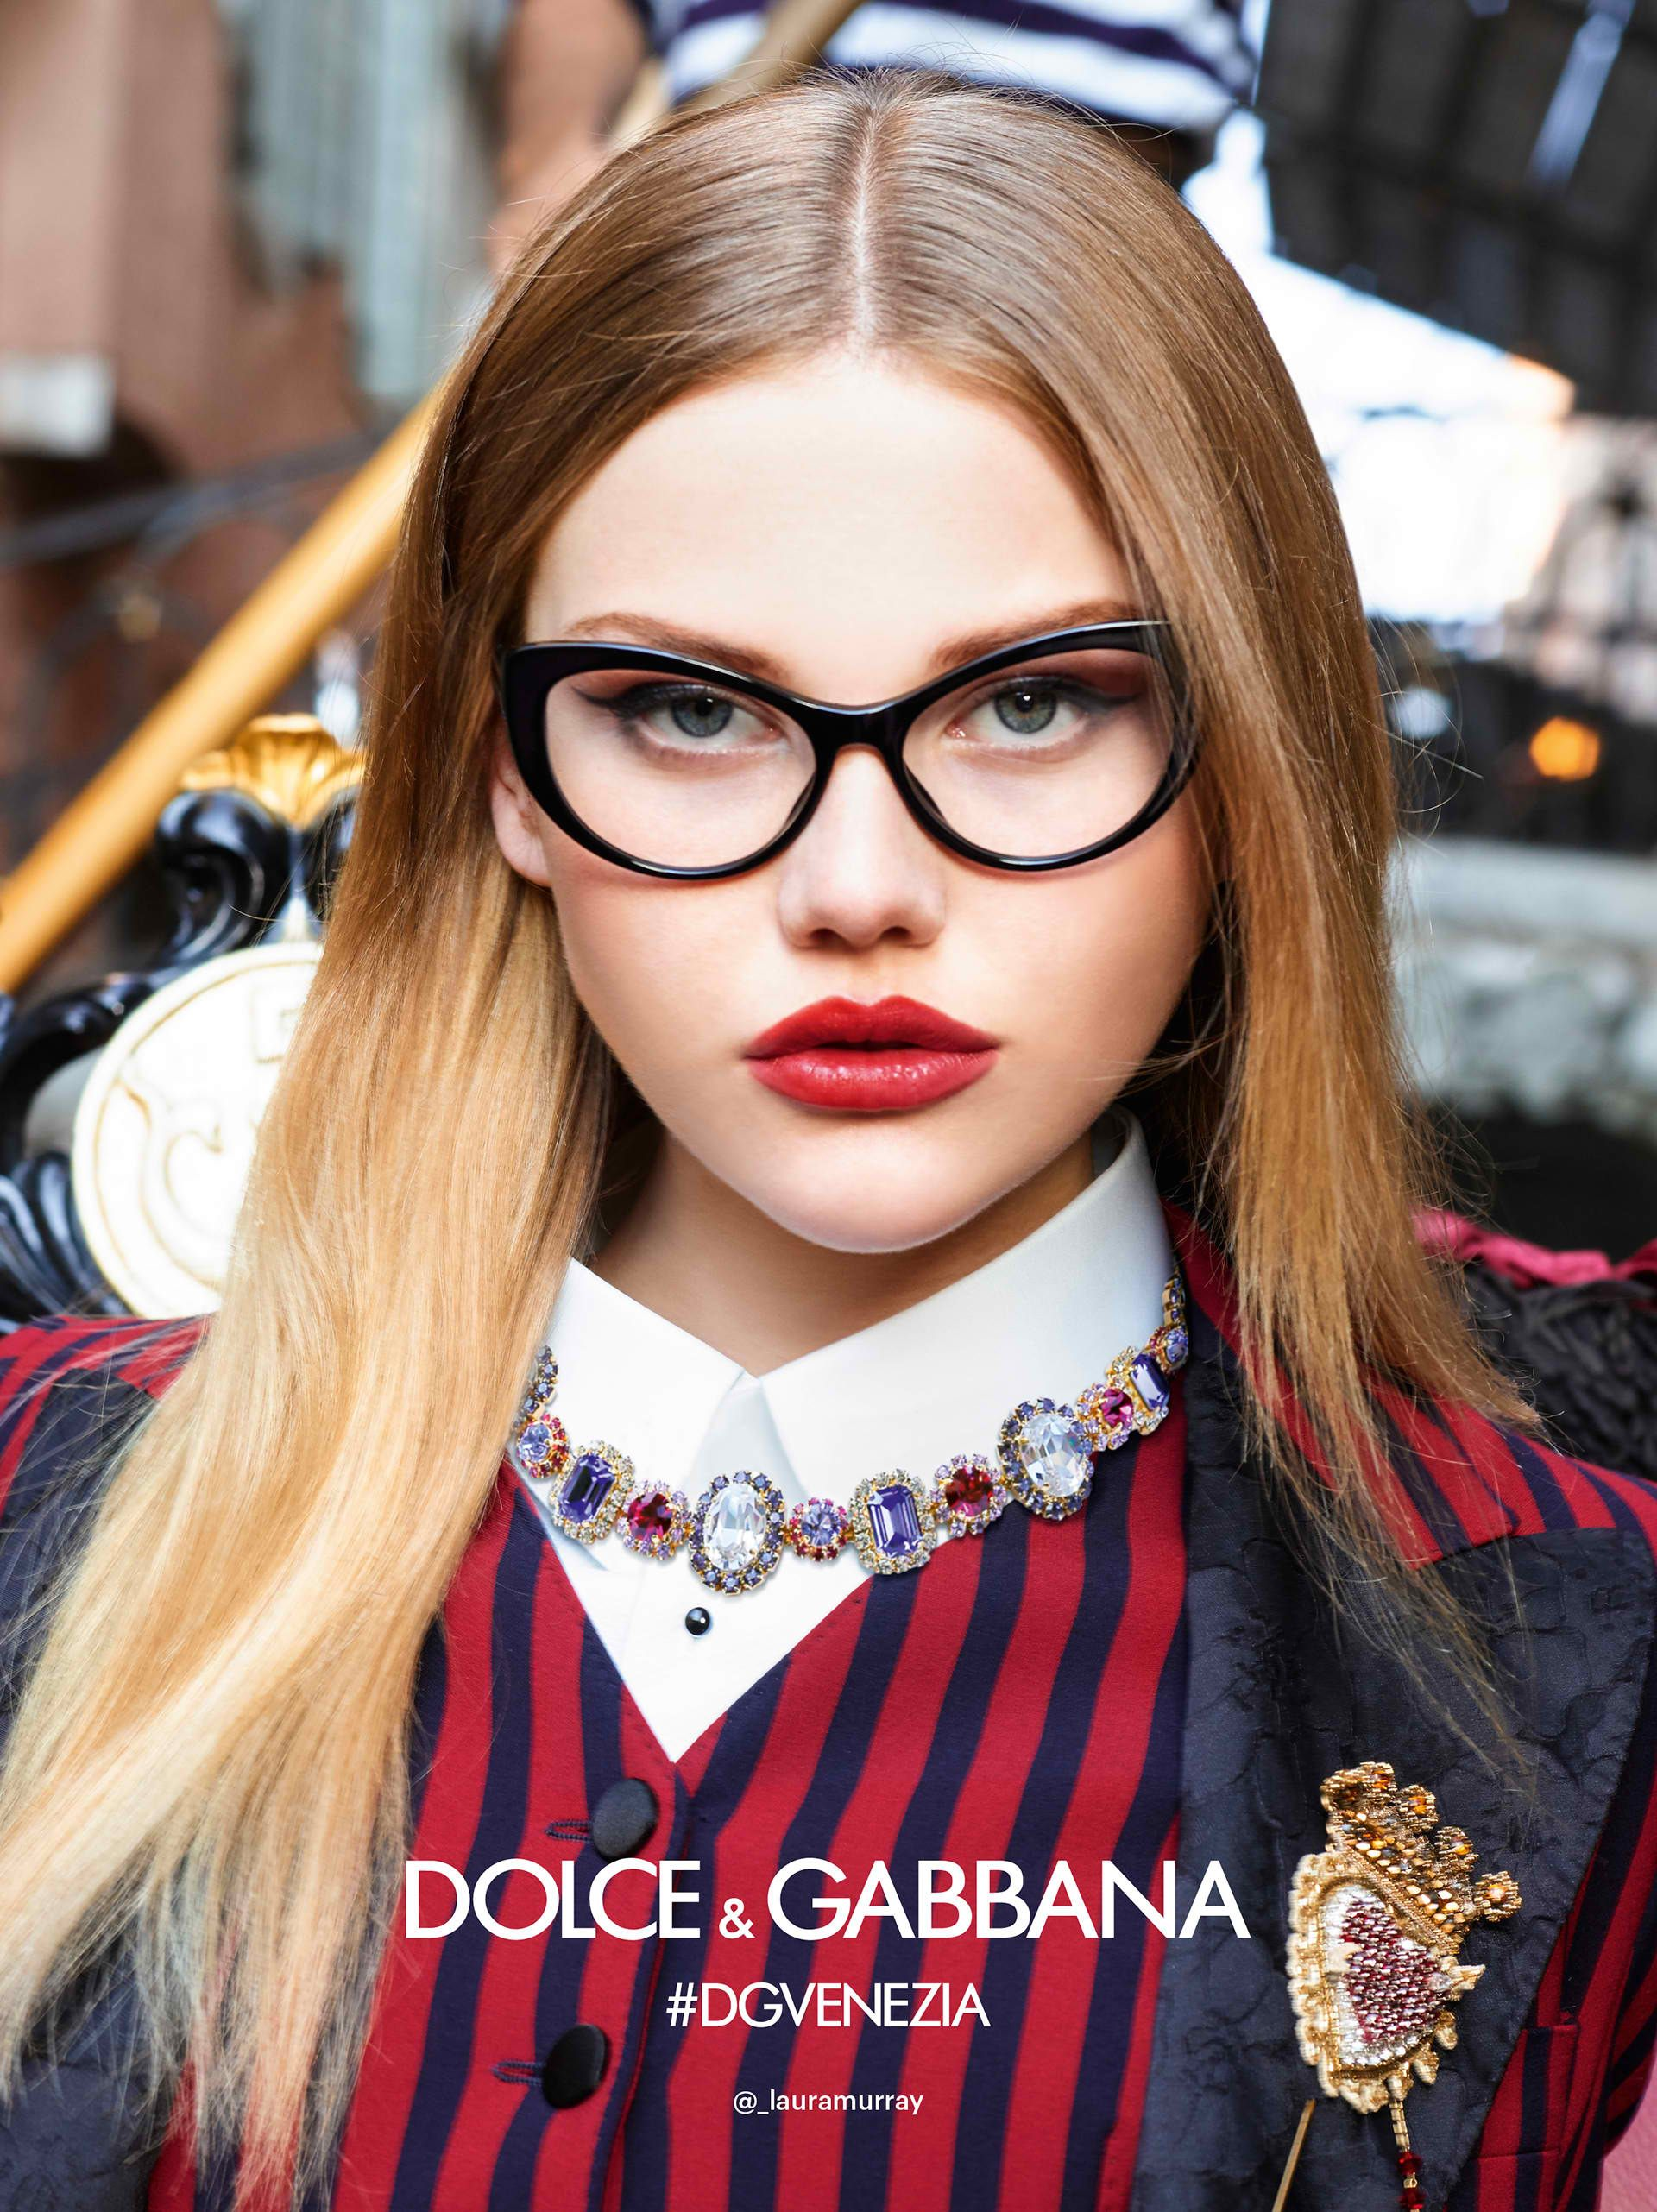 a4091ab924a1 Dolce   Gabbana Spring Summer 2018 by The Morelli Brothers